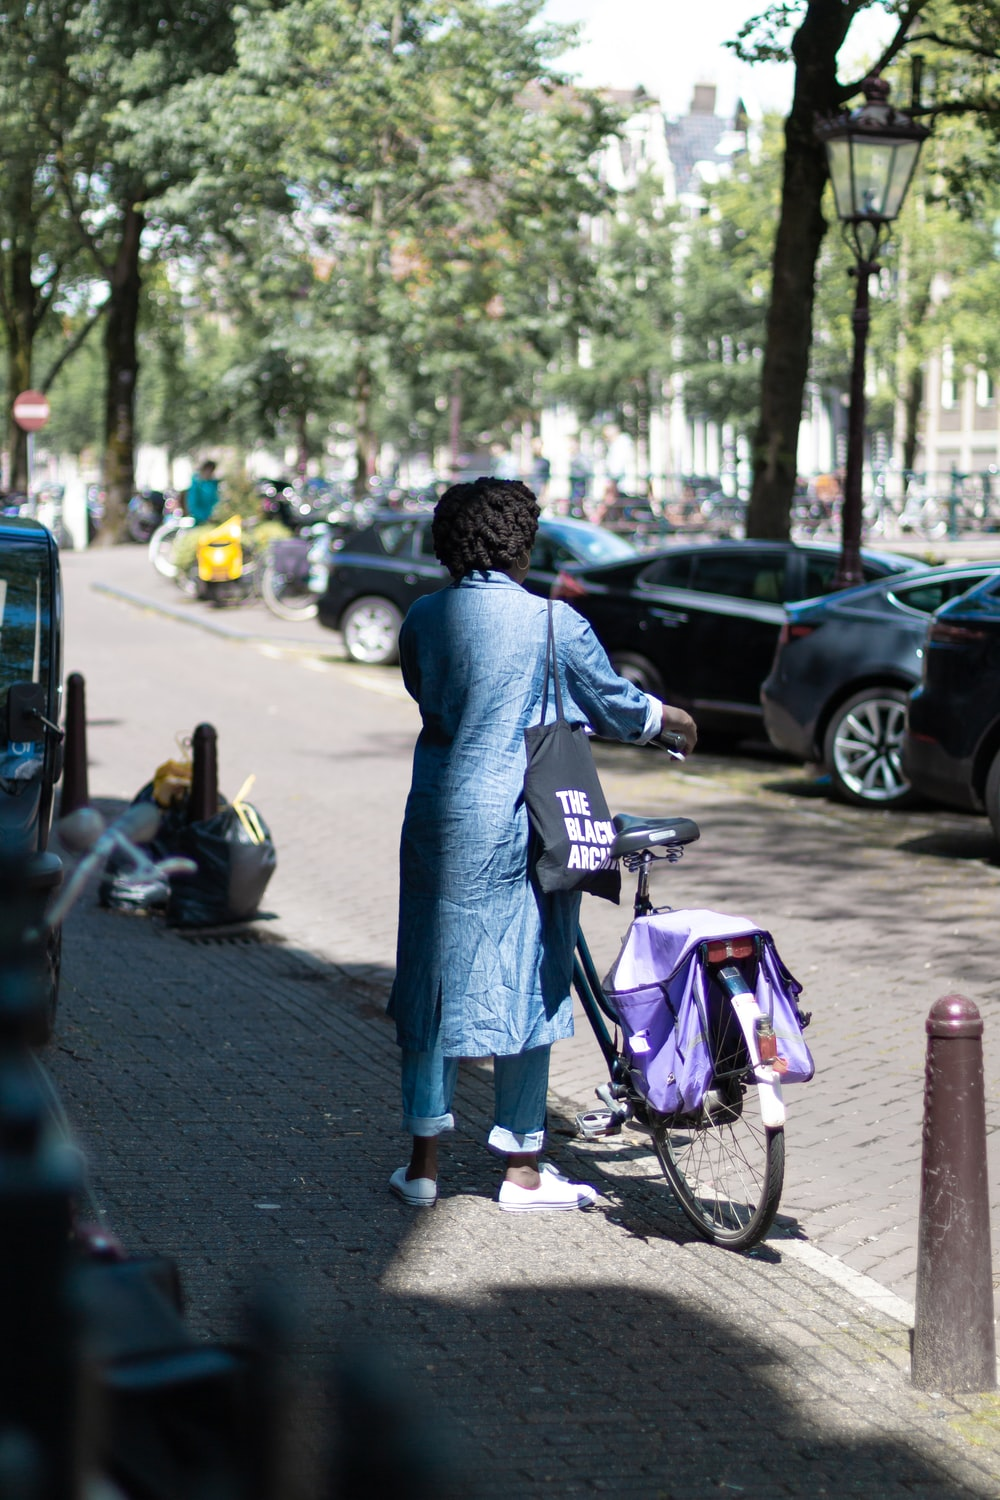 woman standing in front of bicycle during daytime